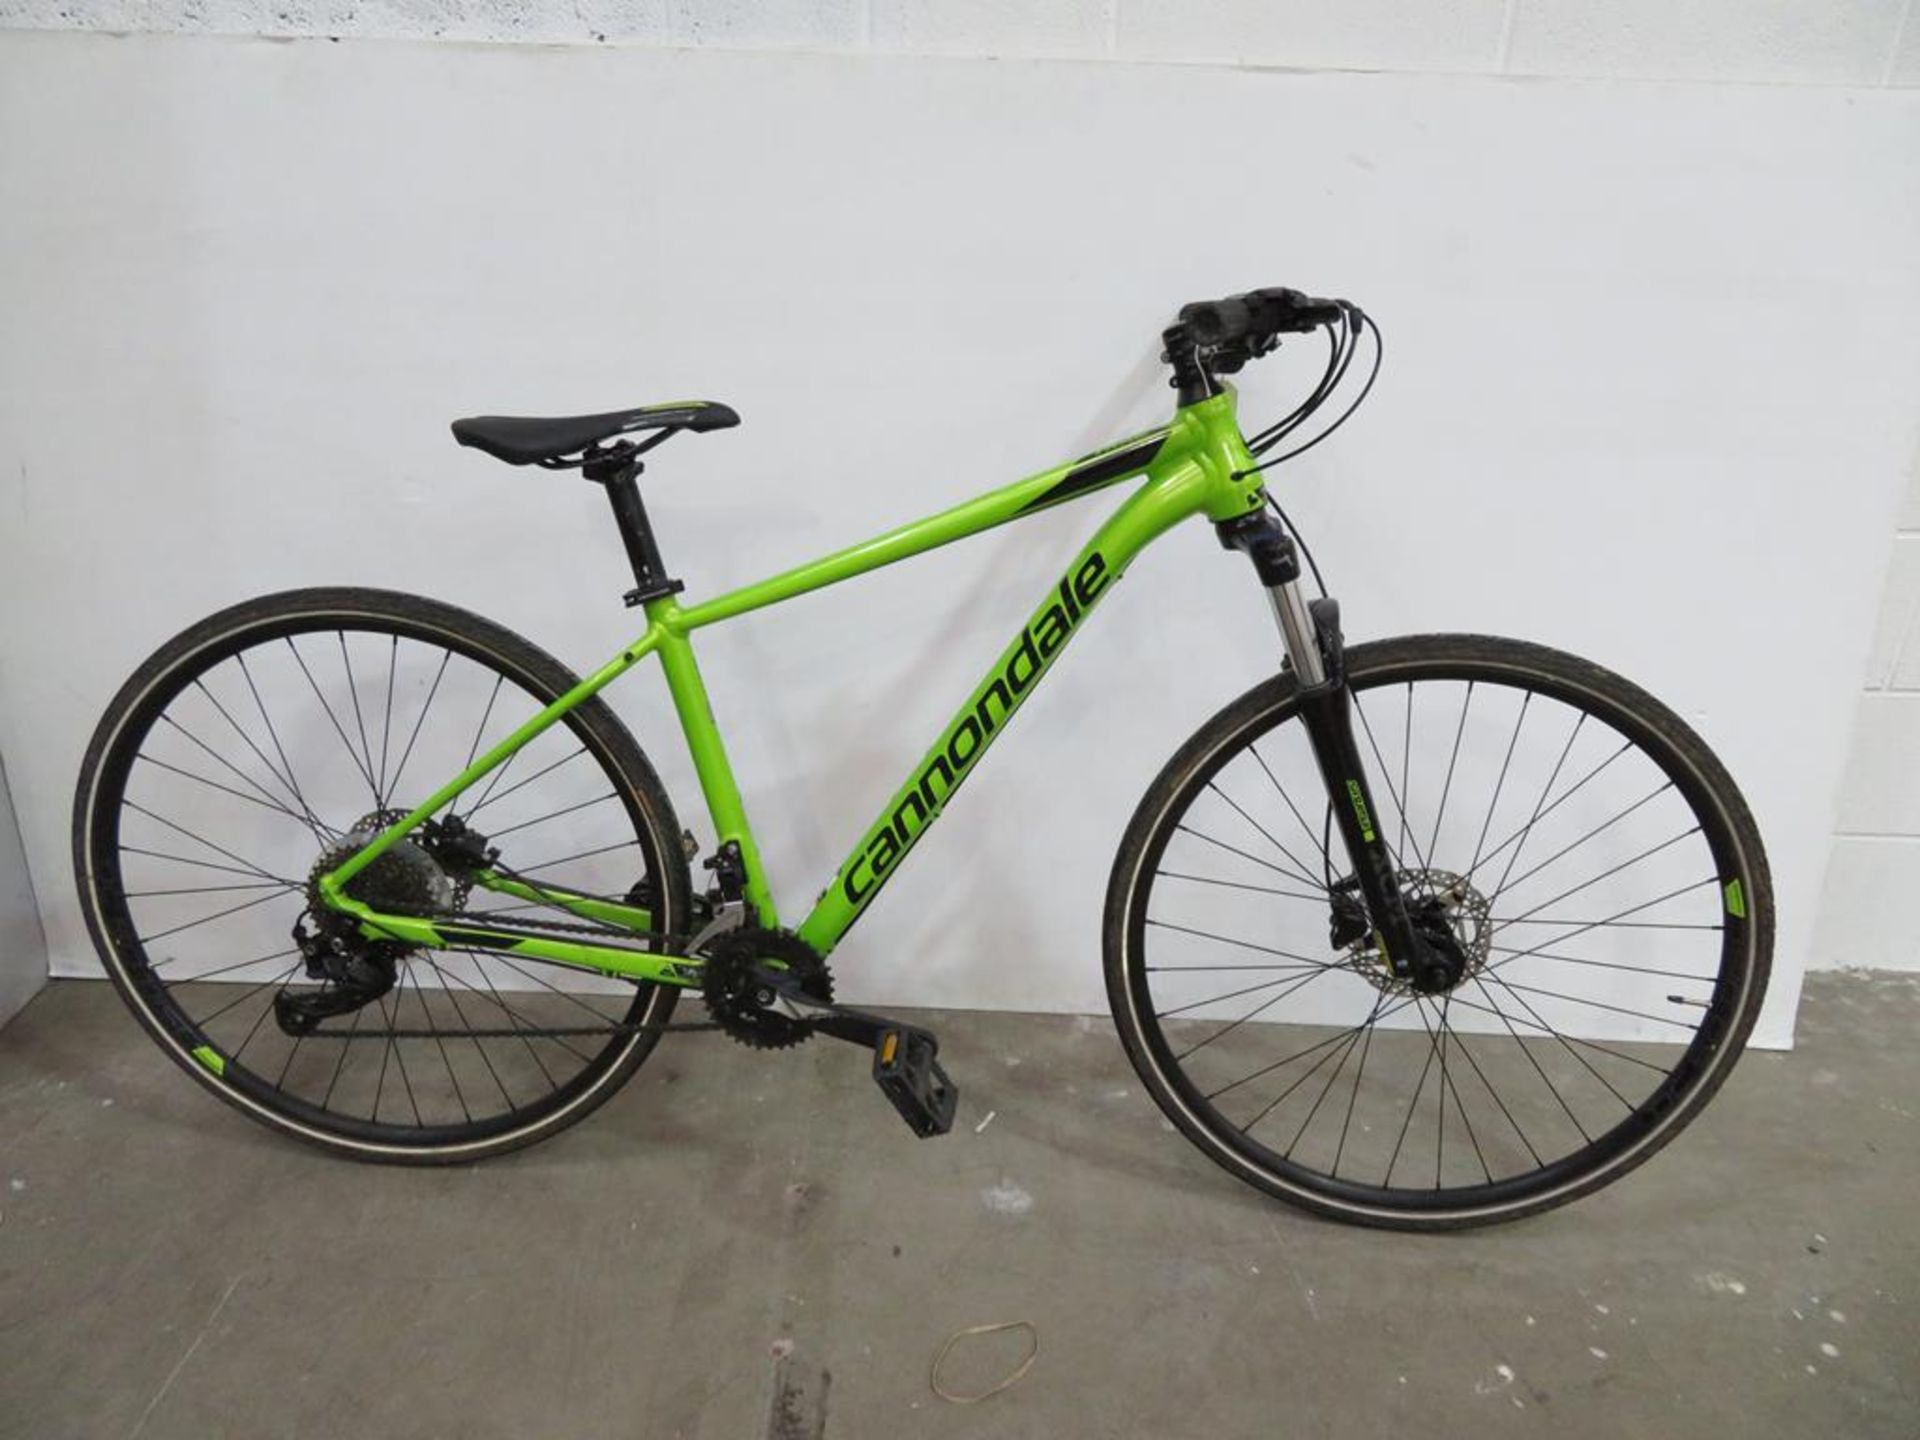 Lot 2 - Cannondale Trail Bike with accessories